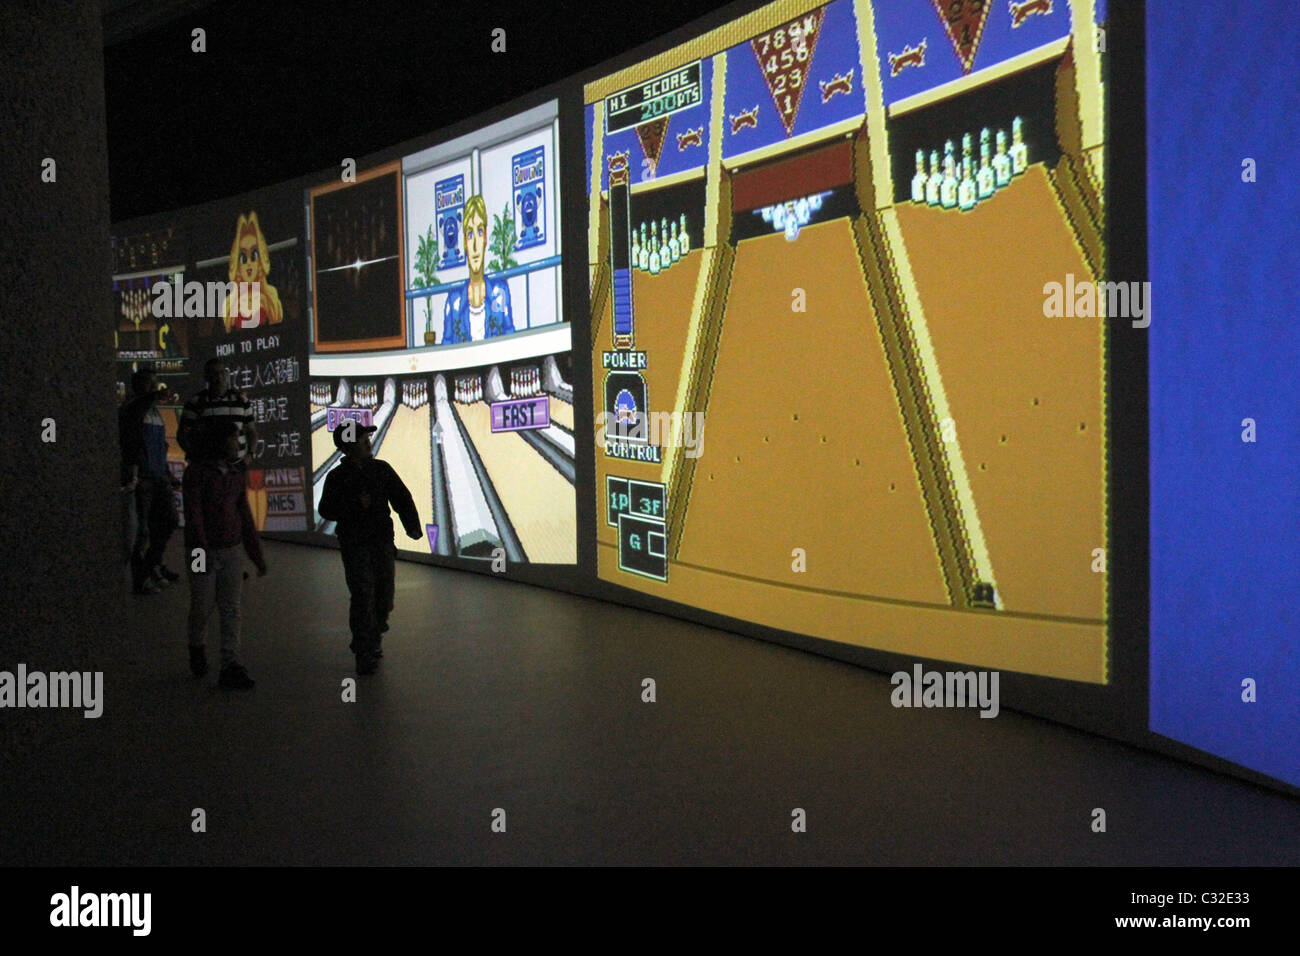 Cory Arcangel installation at the Barbican in London is an installation with 14 bowling video games from the1970s - Stock Image